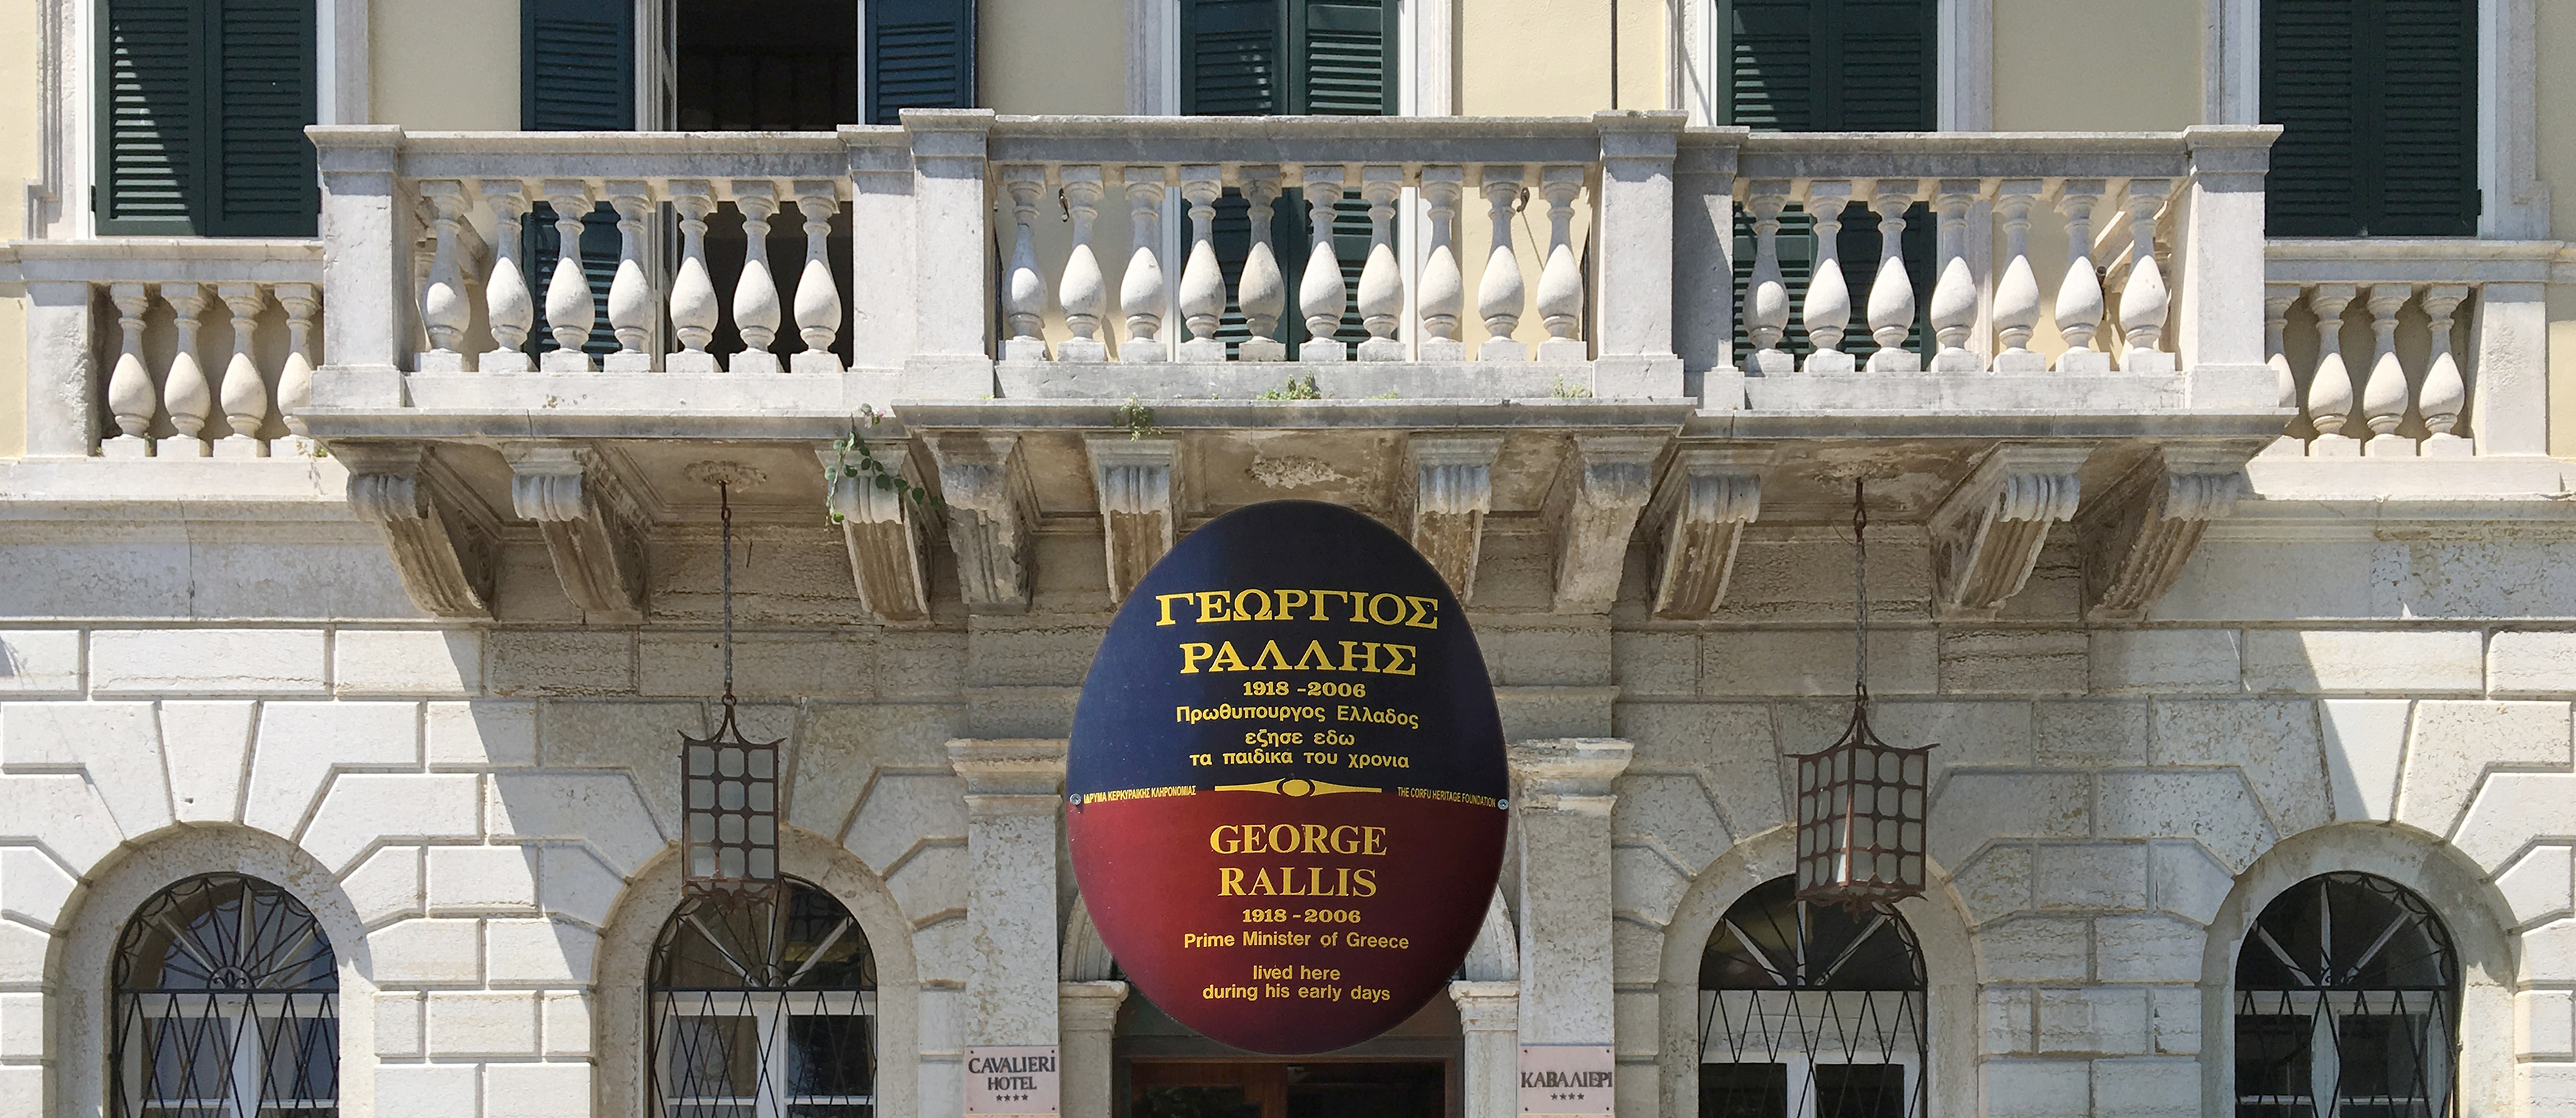 Corfu Heritage Foundation - Memorial Plaques